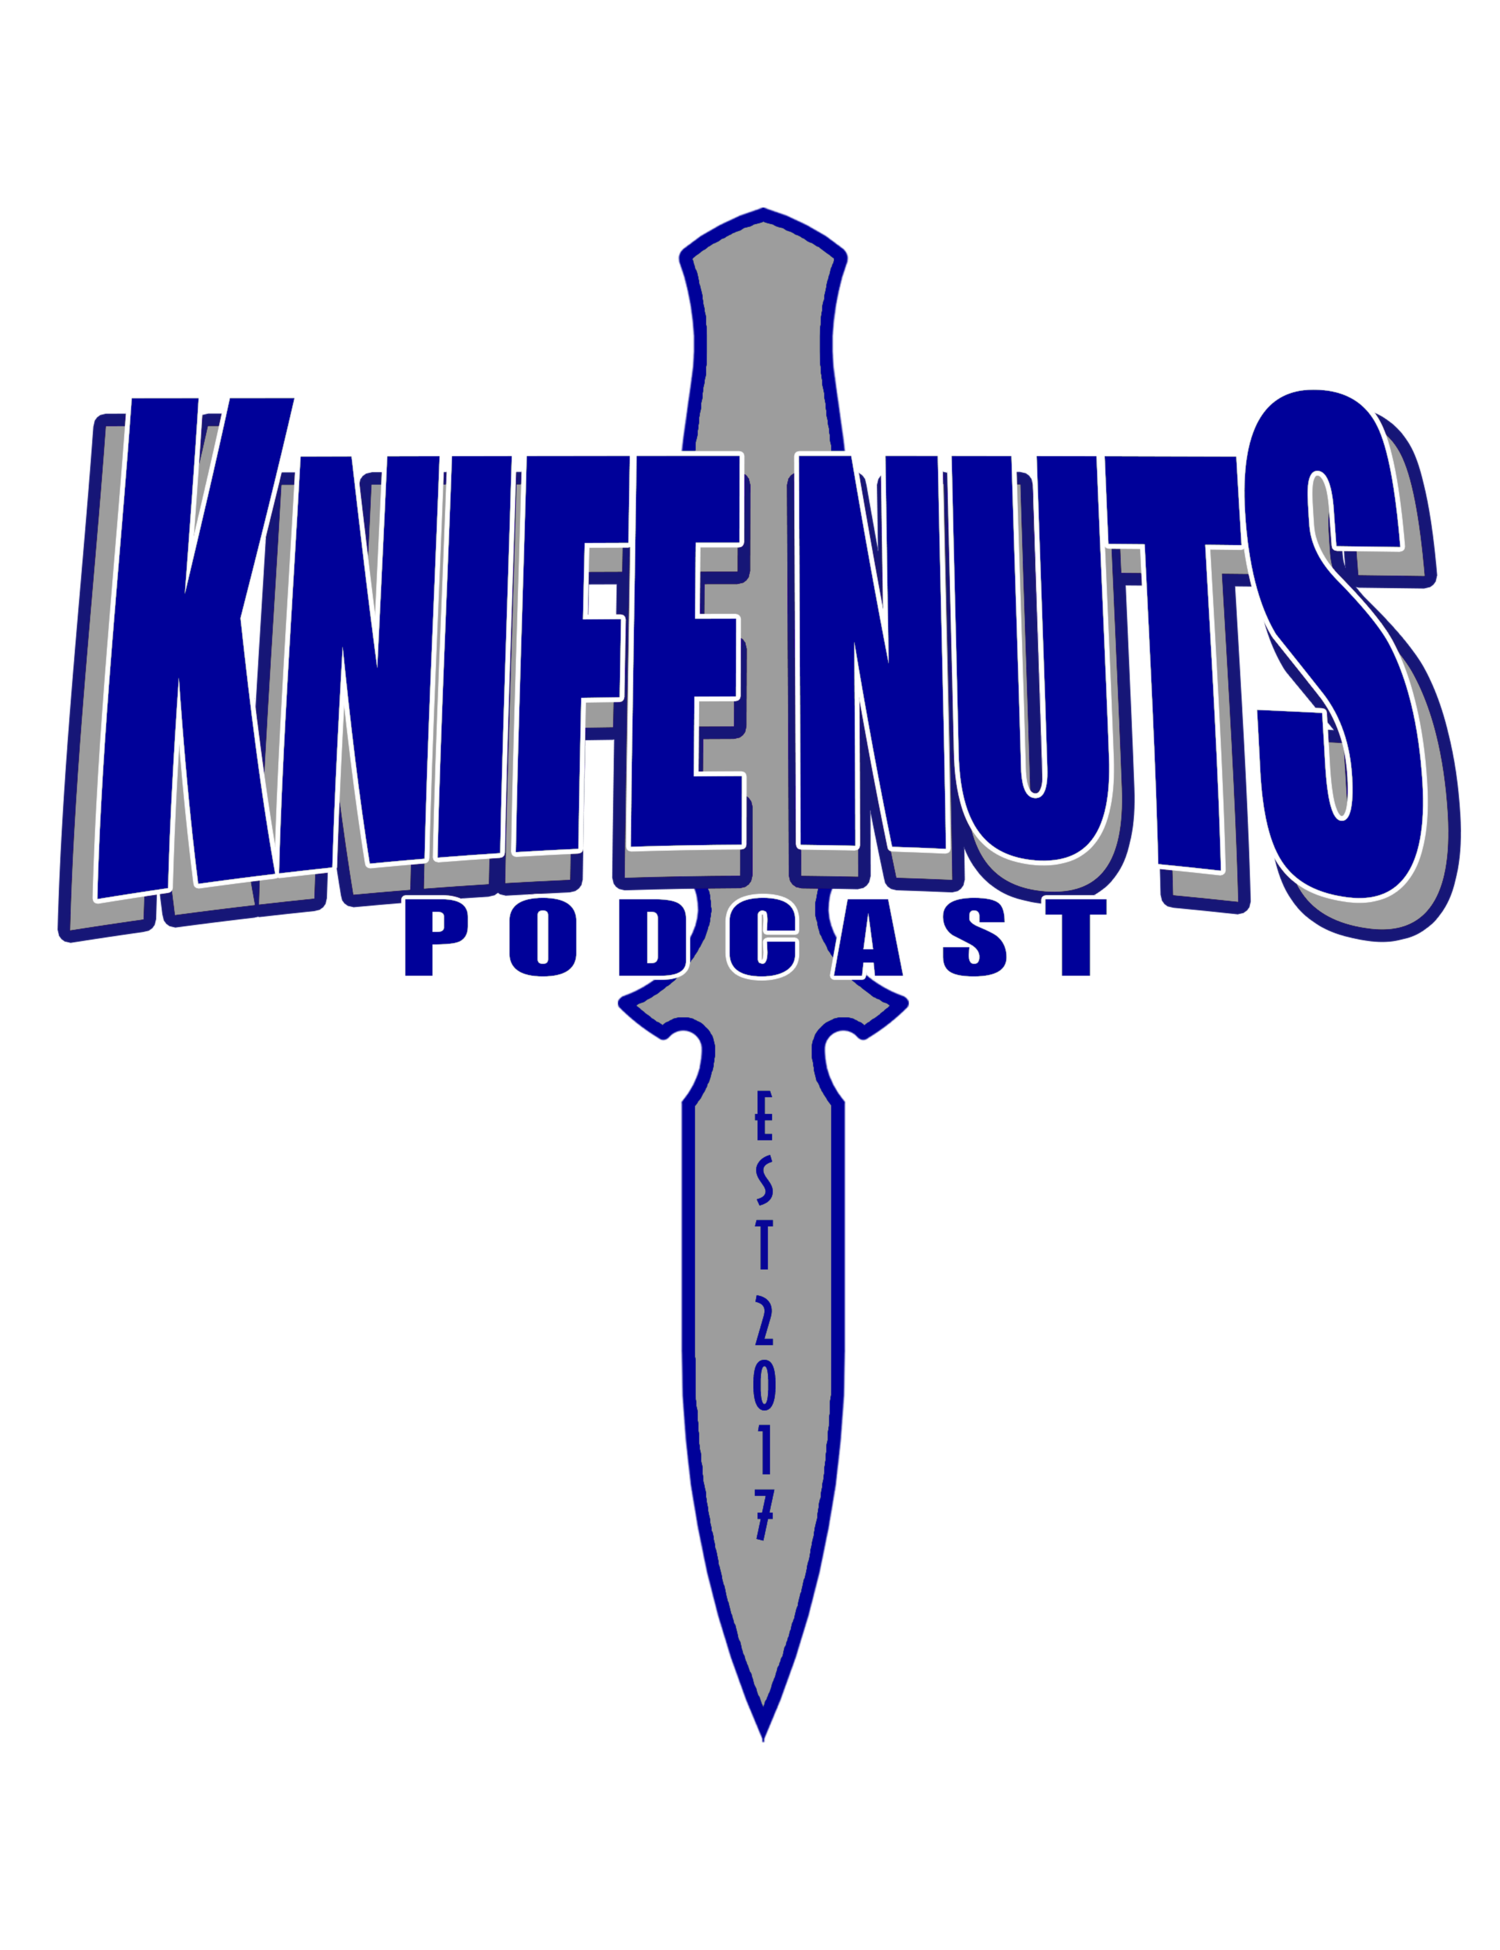 Knife Nuts